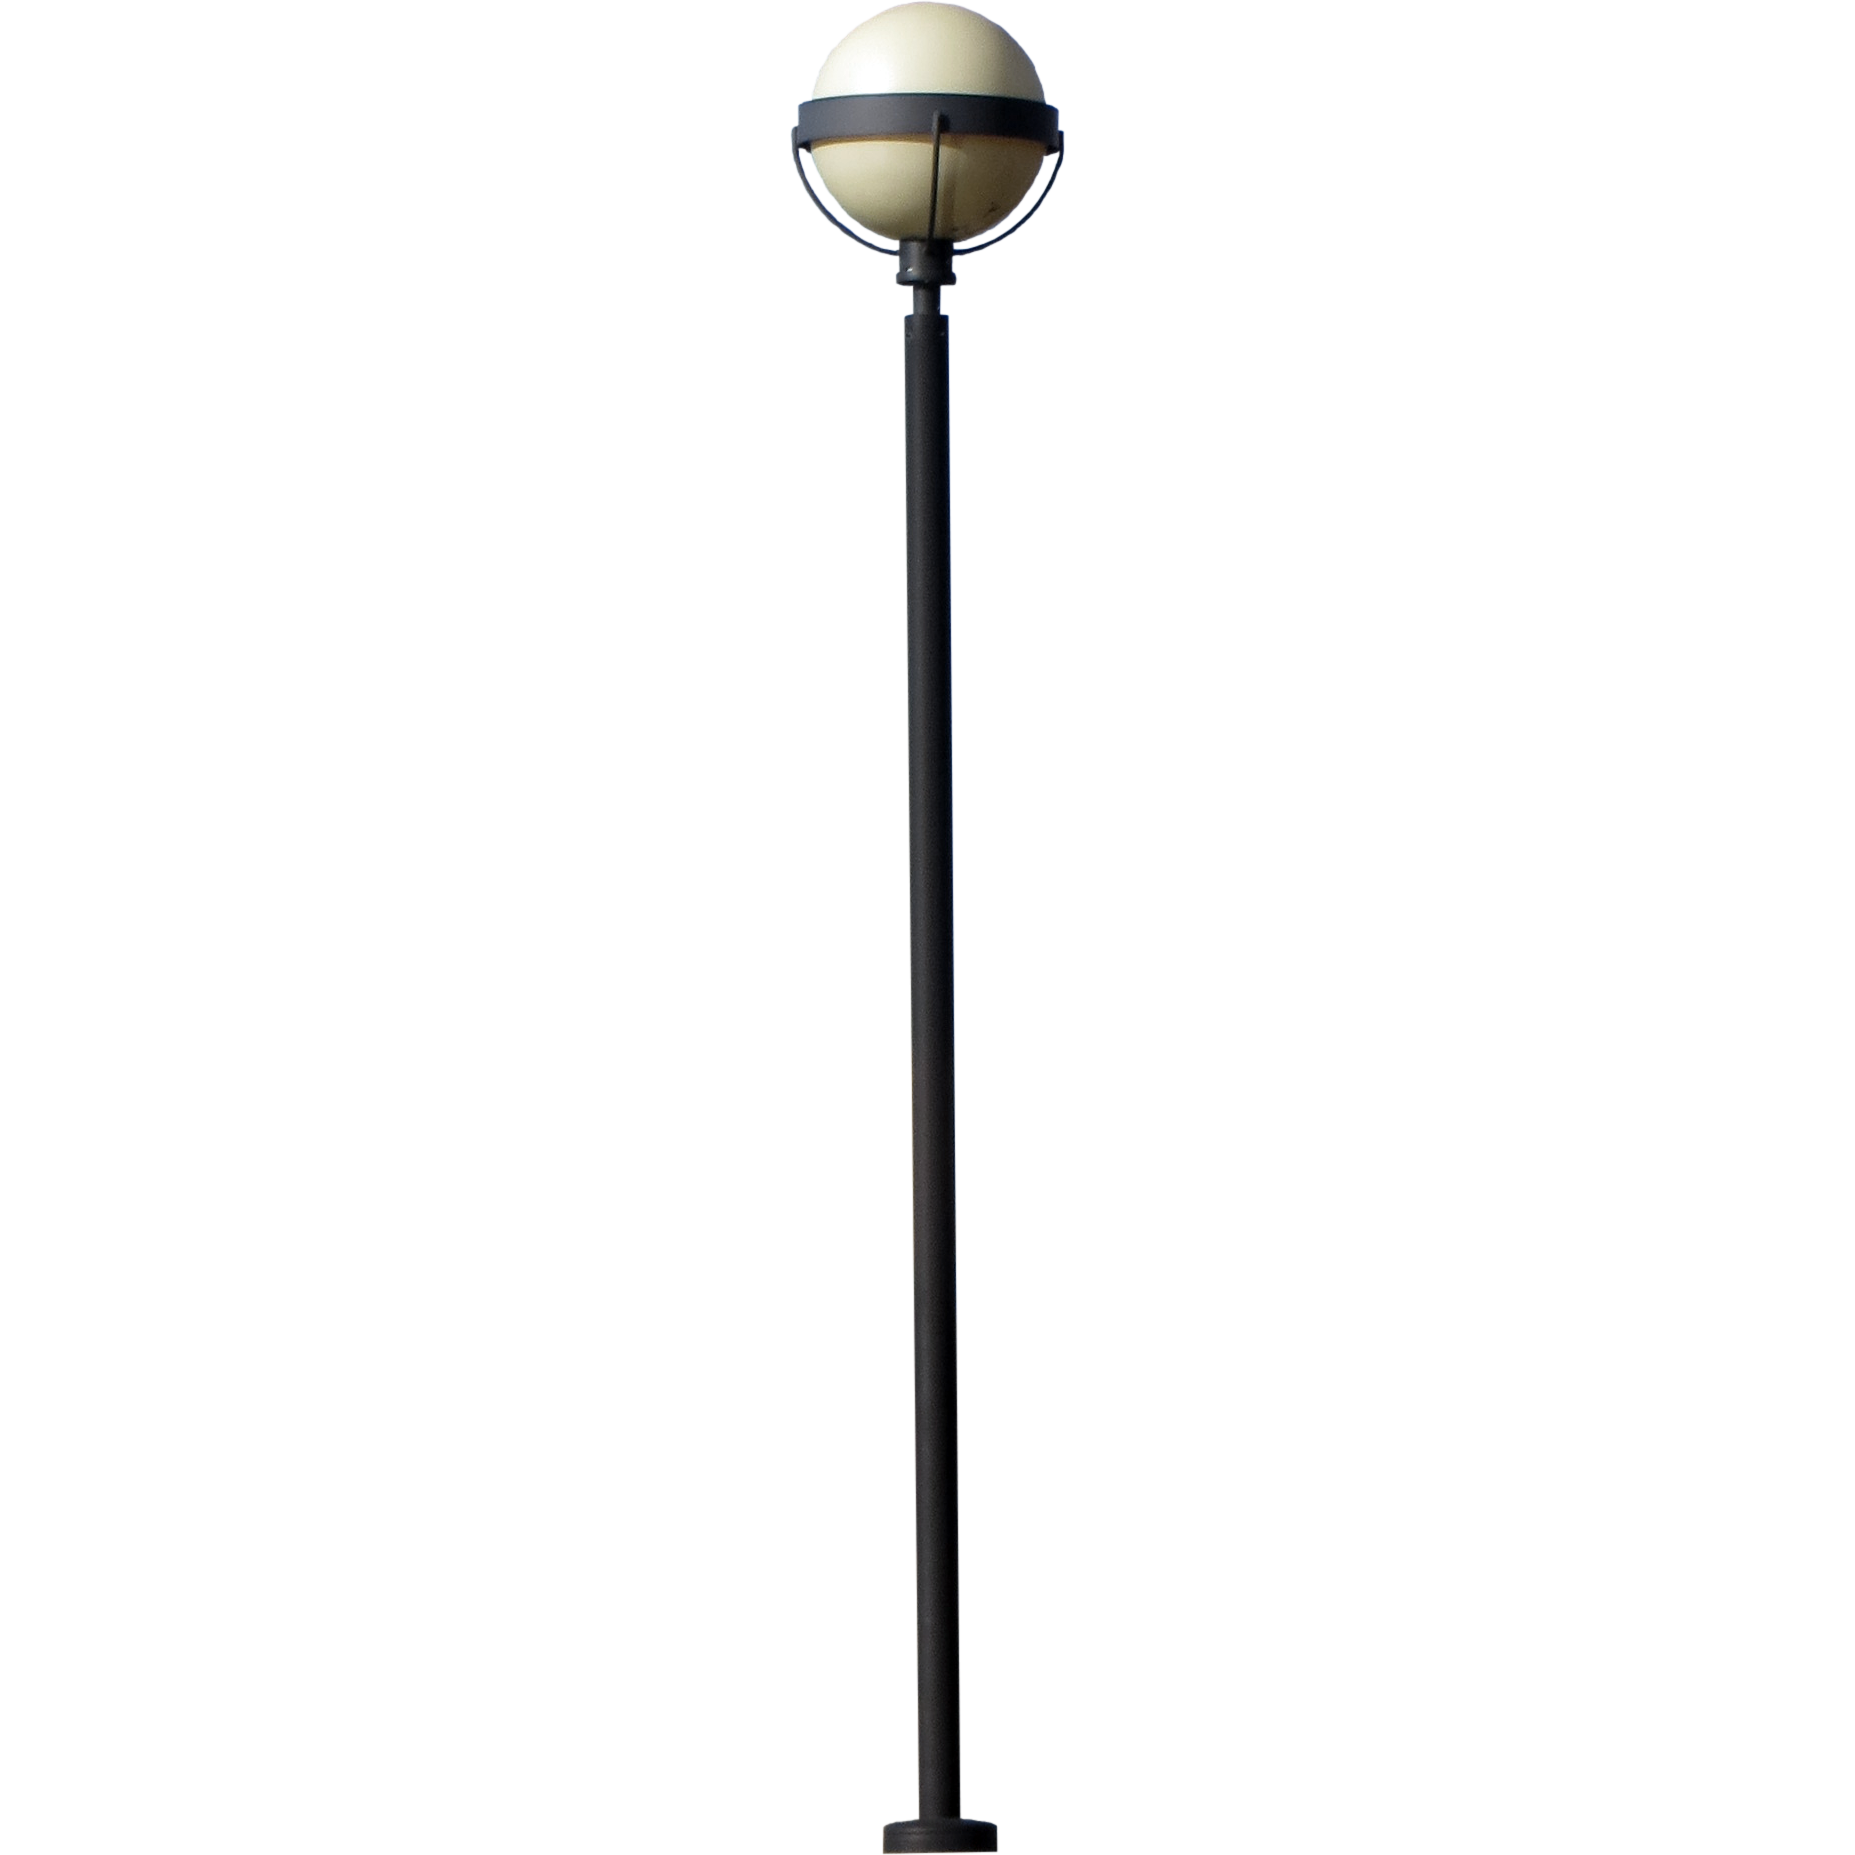 Globe street lamp clipart clipart suggest for Lamp light photoshop